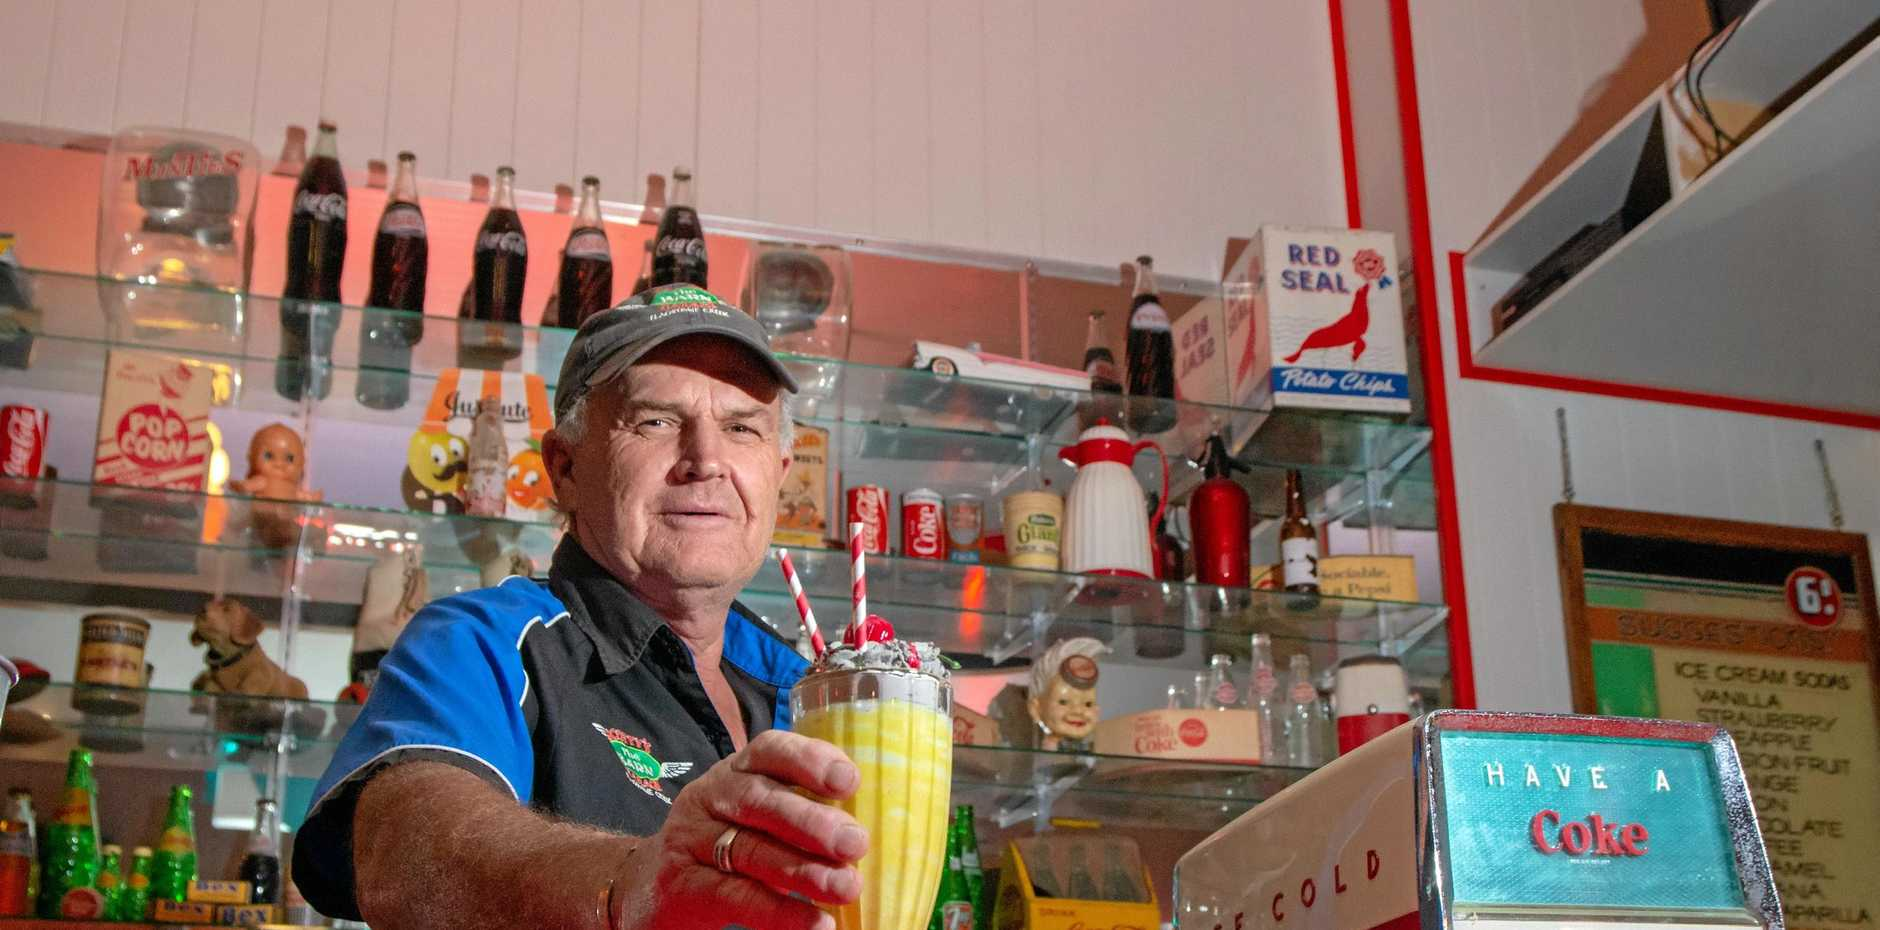 Sarah Ross and Scott Wright have operate The Barn and Scotty's Garage in Flagstone creek since 2008.  The business was named the 2017 Lockyer Business of the Year.